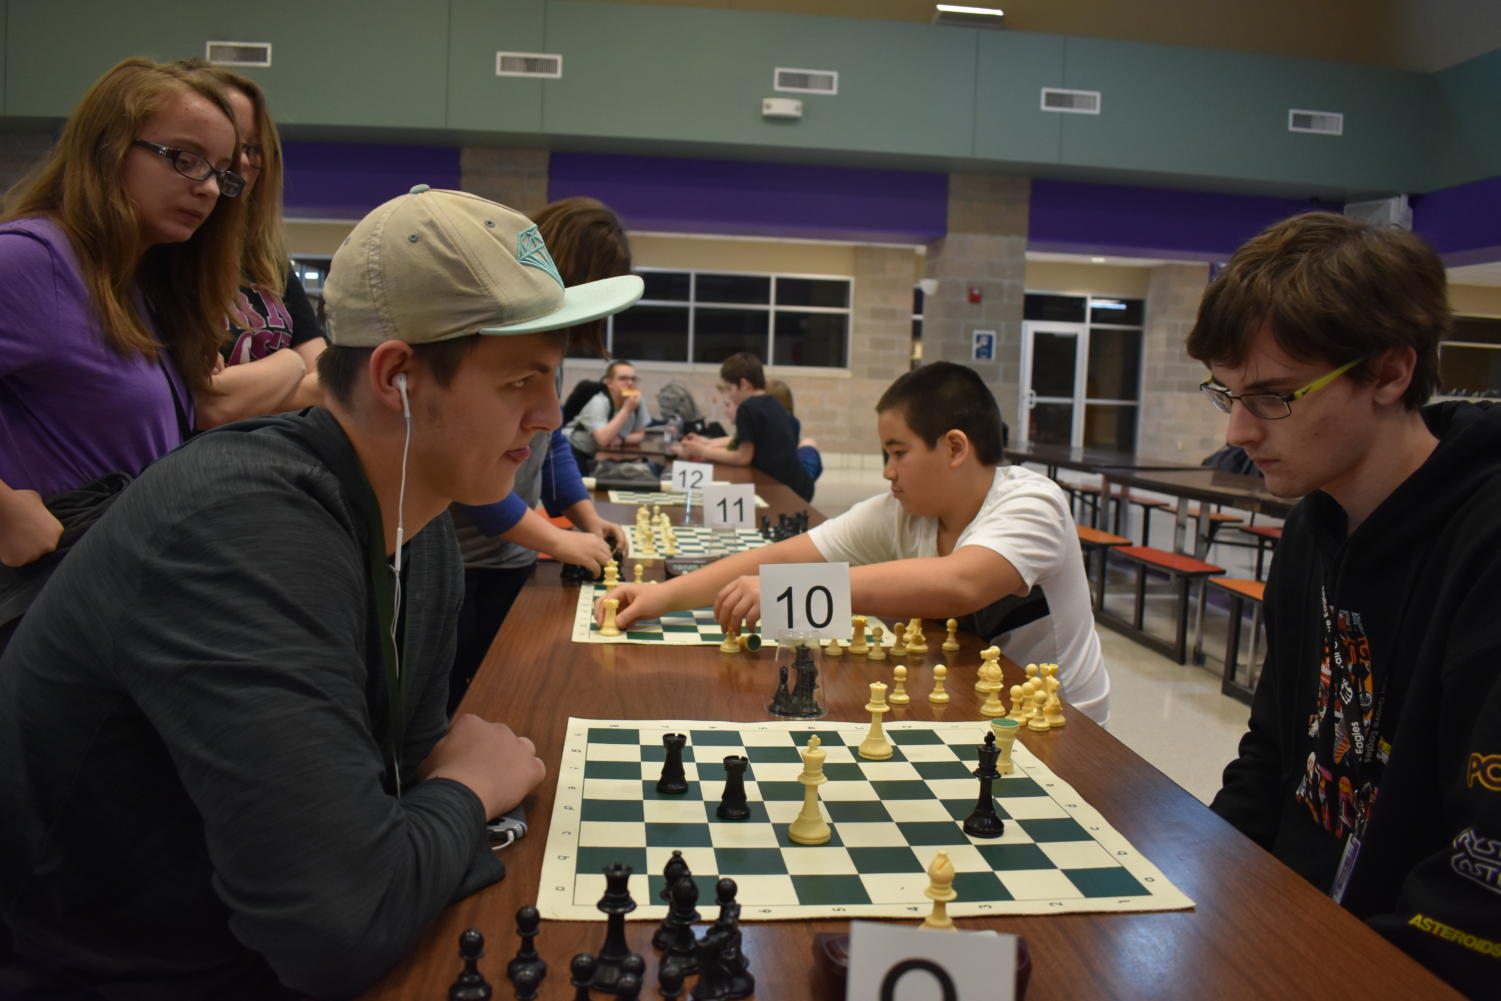 Bradley Shaffer and Alex Bates compete during the chess tournament.